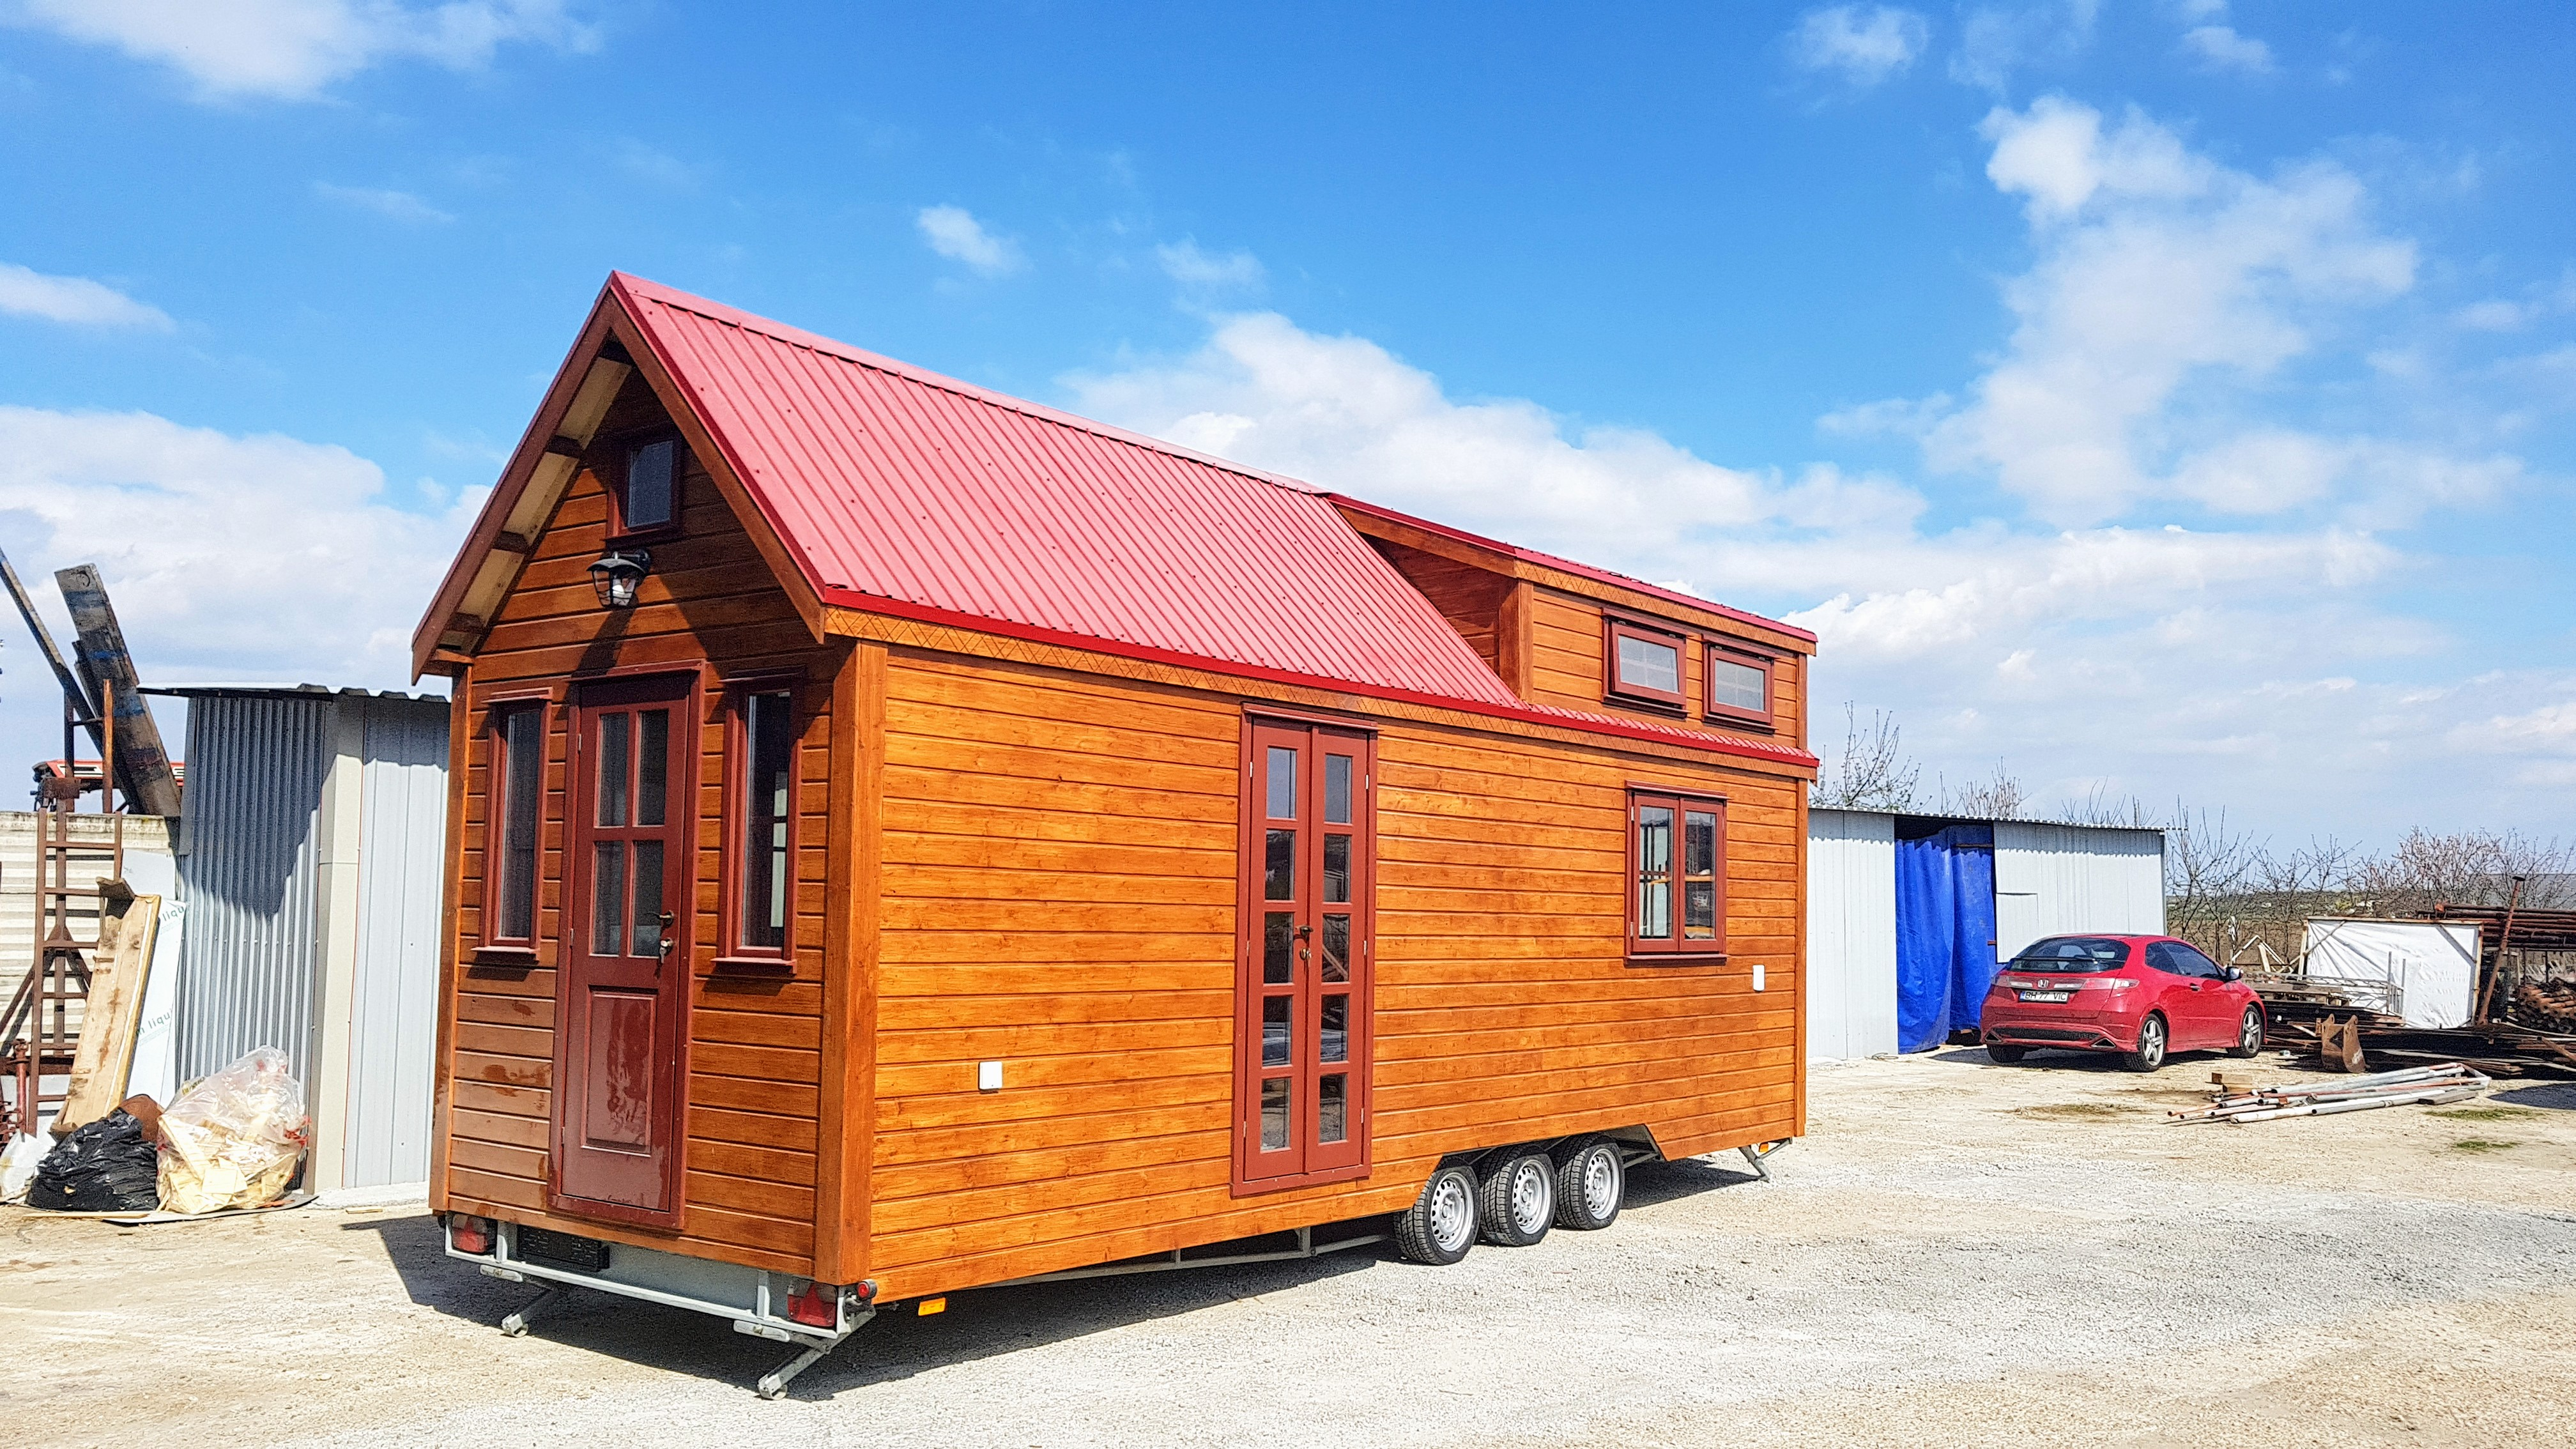 Container Tiny Haus Kaufen Tinywunderhouse Handcrafted Tiny Houses On Wheels More